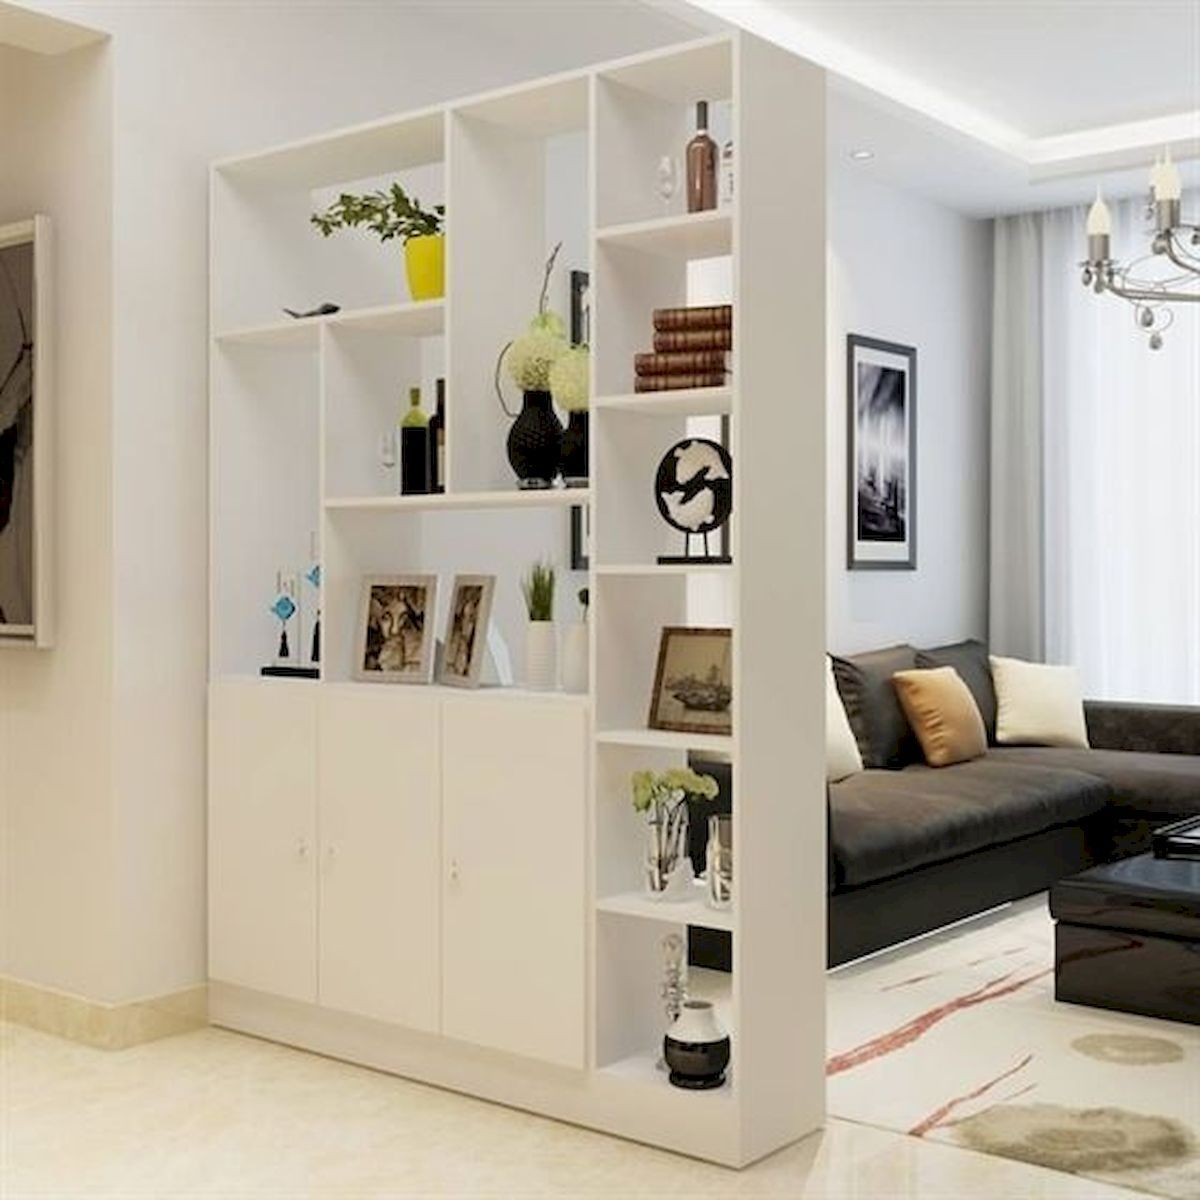 60 Favorite Studio Apartment Storage Decor Ideas And Remodel